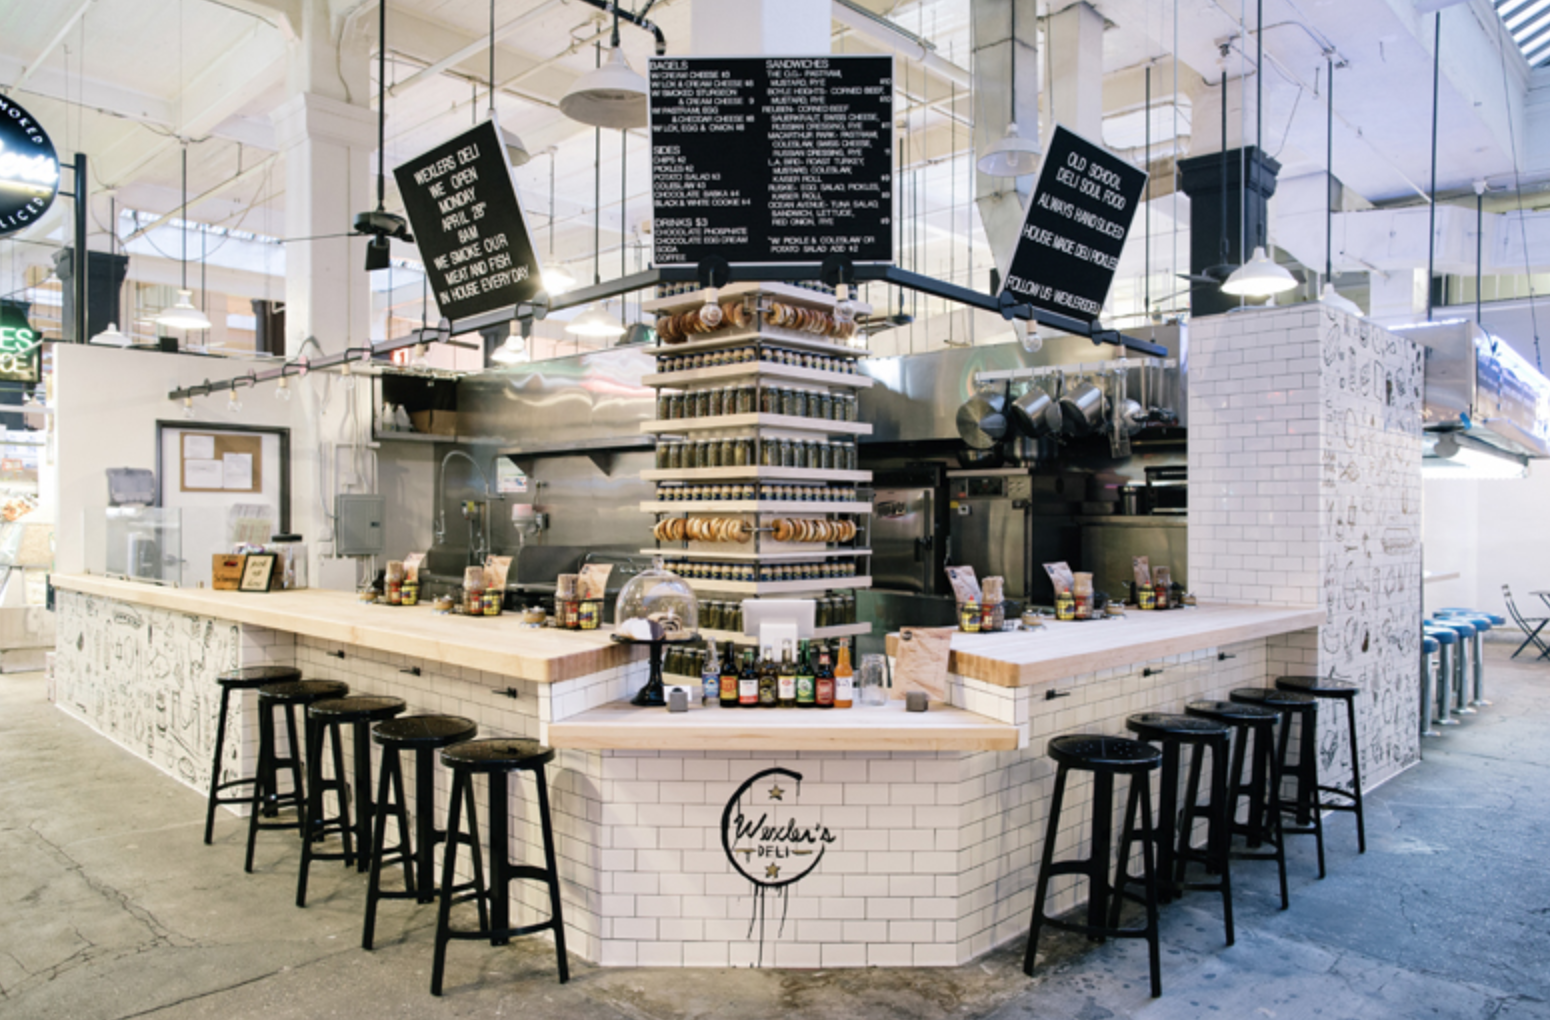 kaper design; restaurant & hospitality design inspiration: october